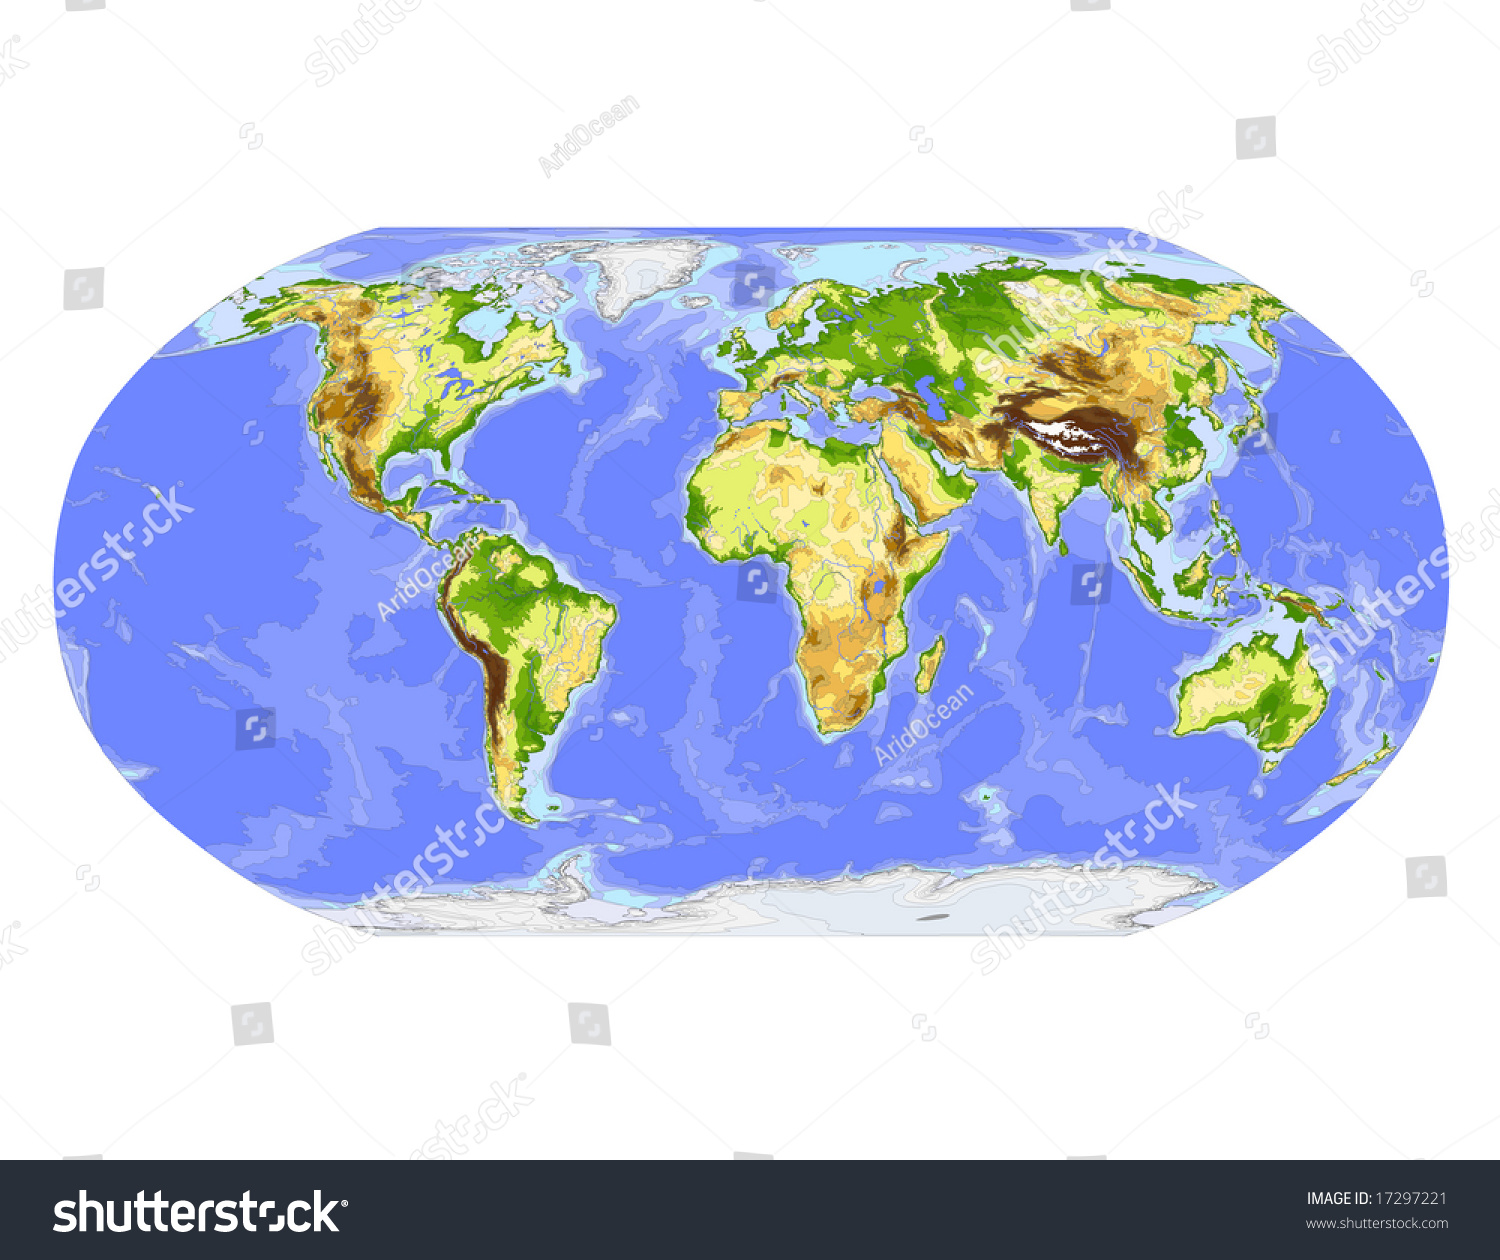 World physical vector map robinson projection vectores en stock world physical vector map robinson projection centered on africa colored according to elevation gumiabroncs Images